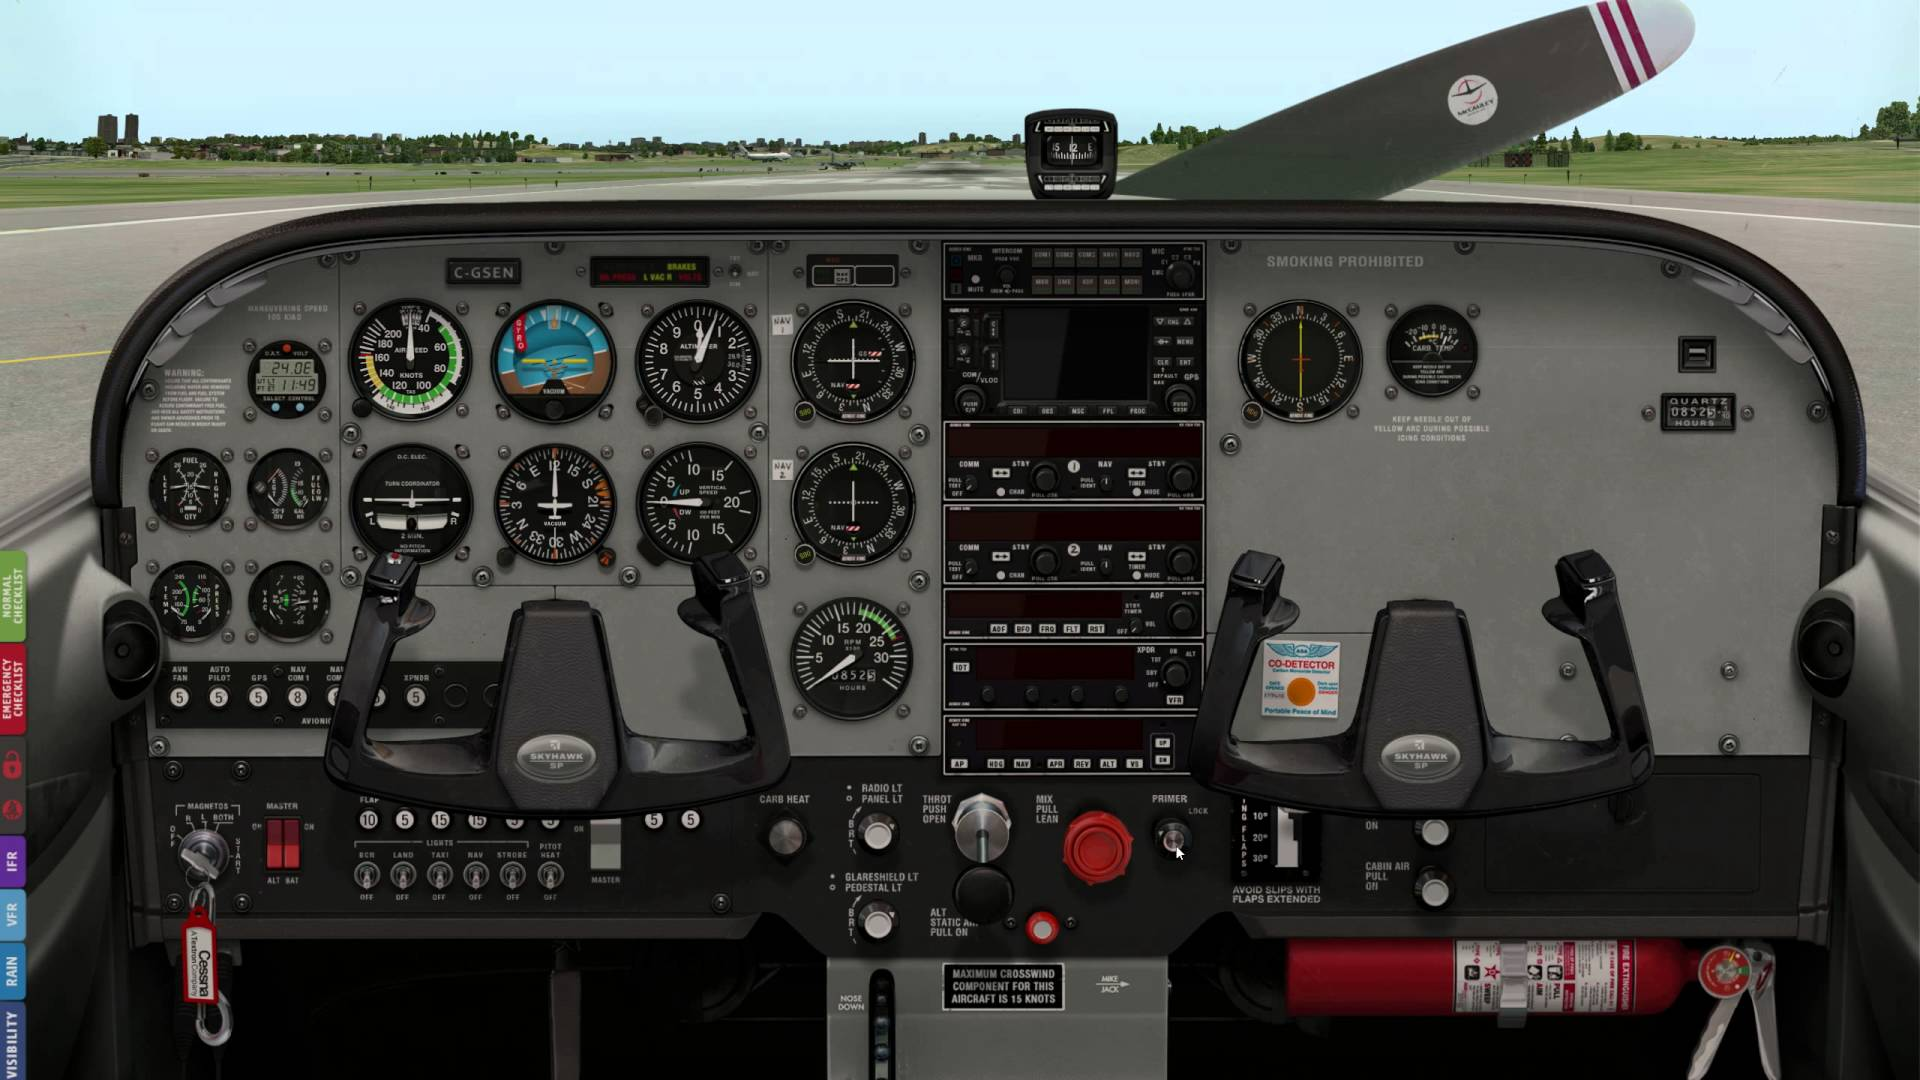 5 Light Aircraft Cockpit Images